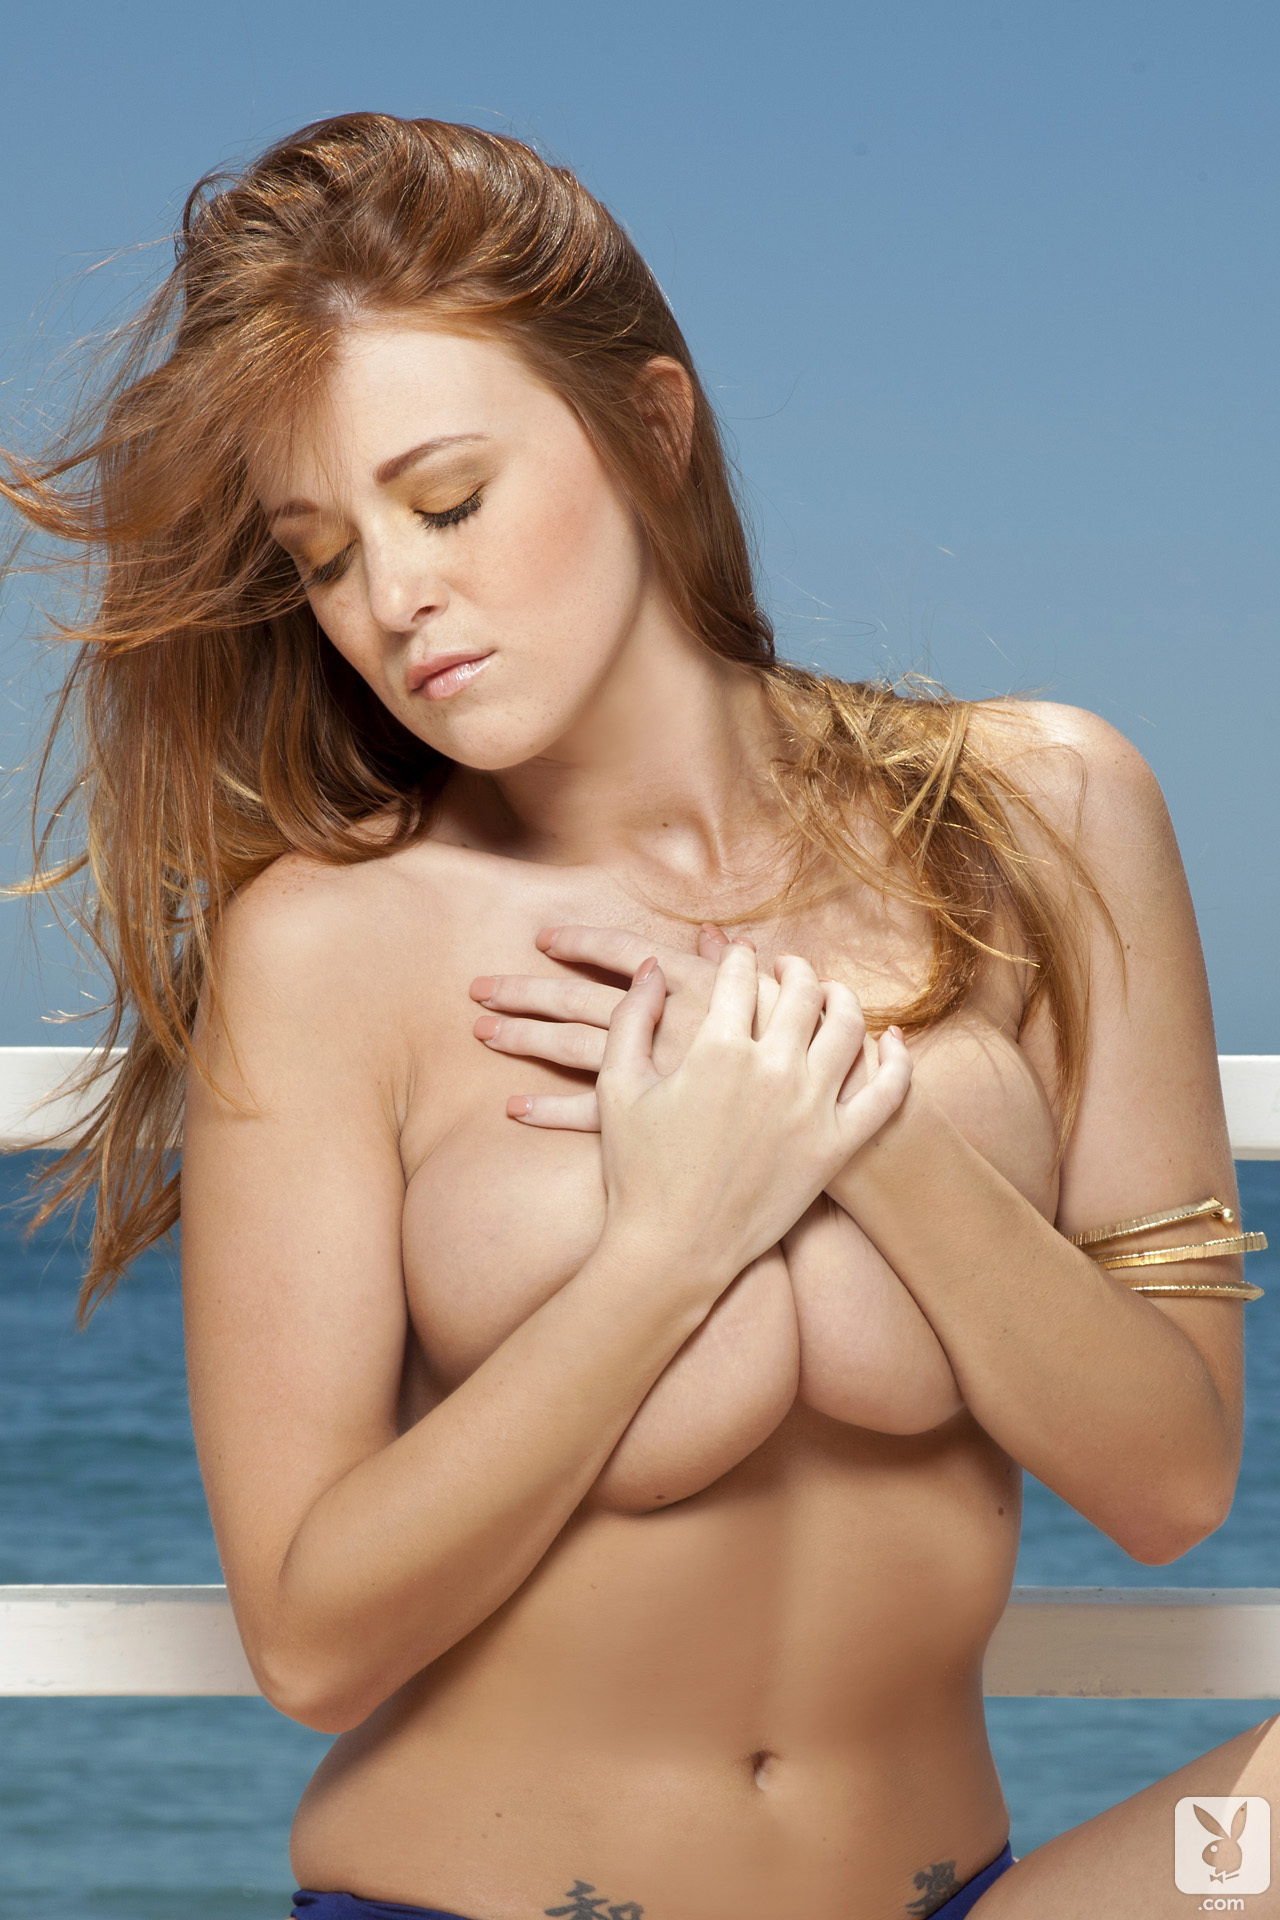 leanna-decker-bikini-boobs-redhead-seaside-playboy-05